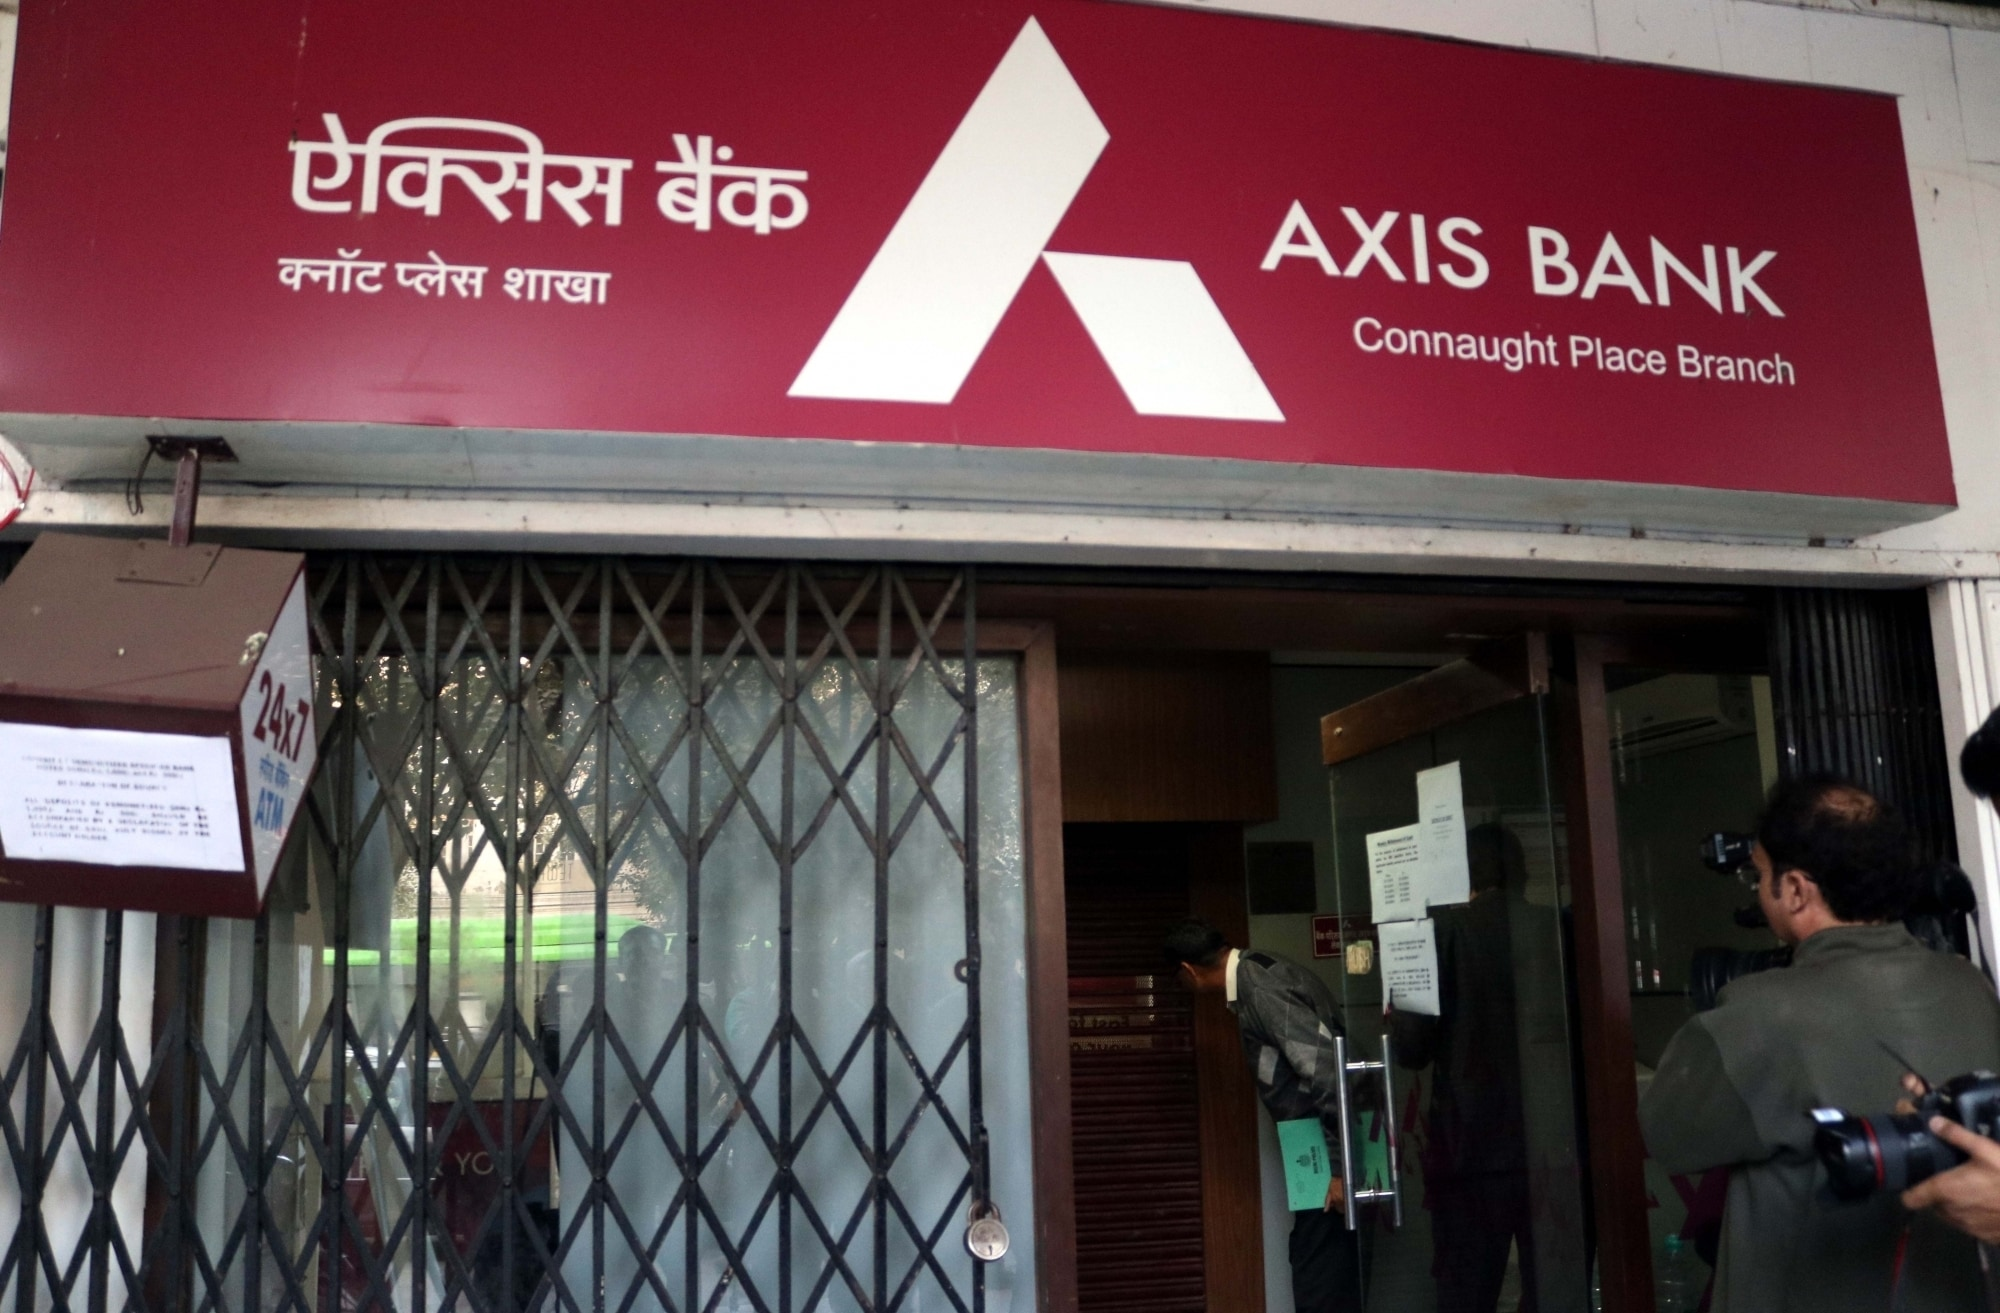 No 10: At the tenth spot is the Mumbai based Axis Bank.